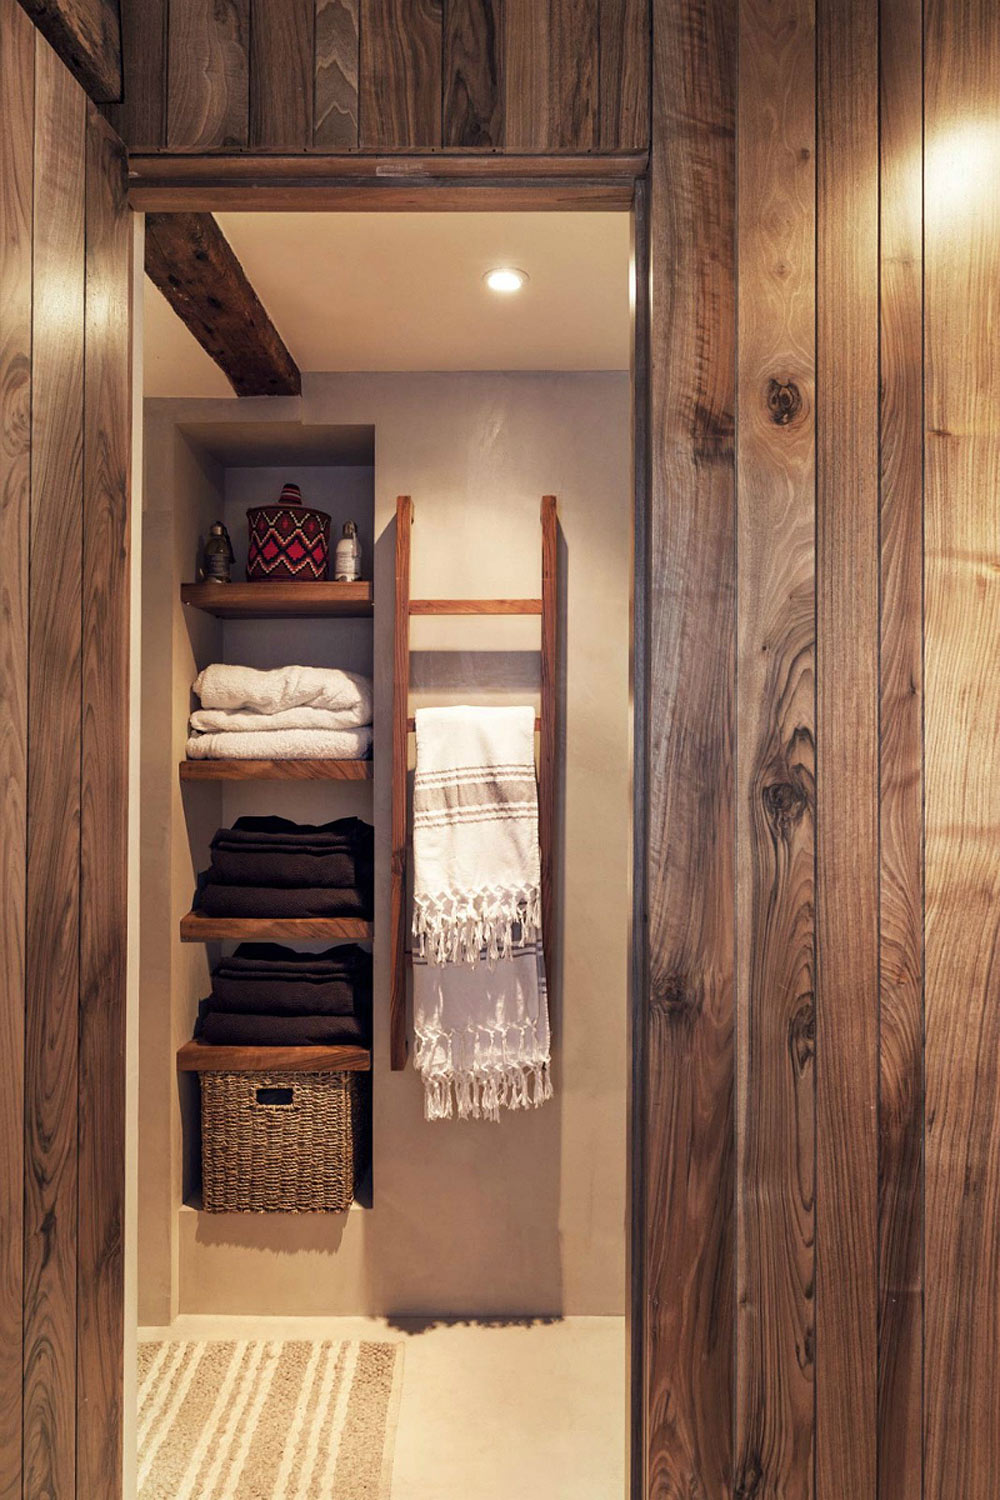 I love a rustic ladder shelf to hang Turkish towels.